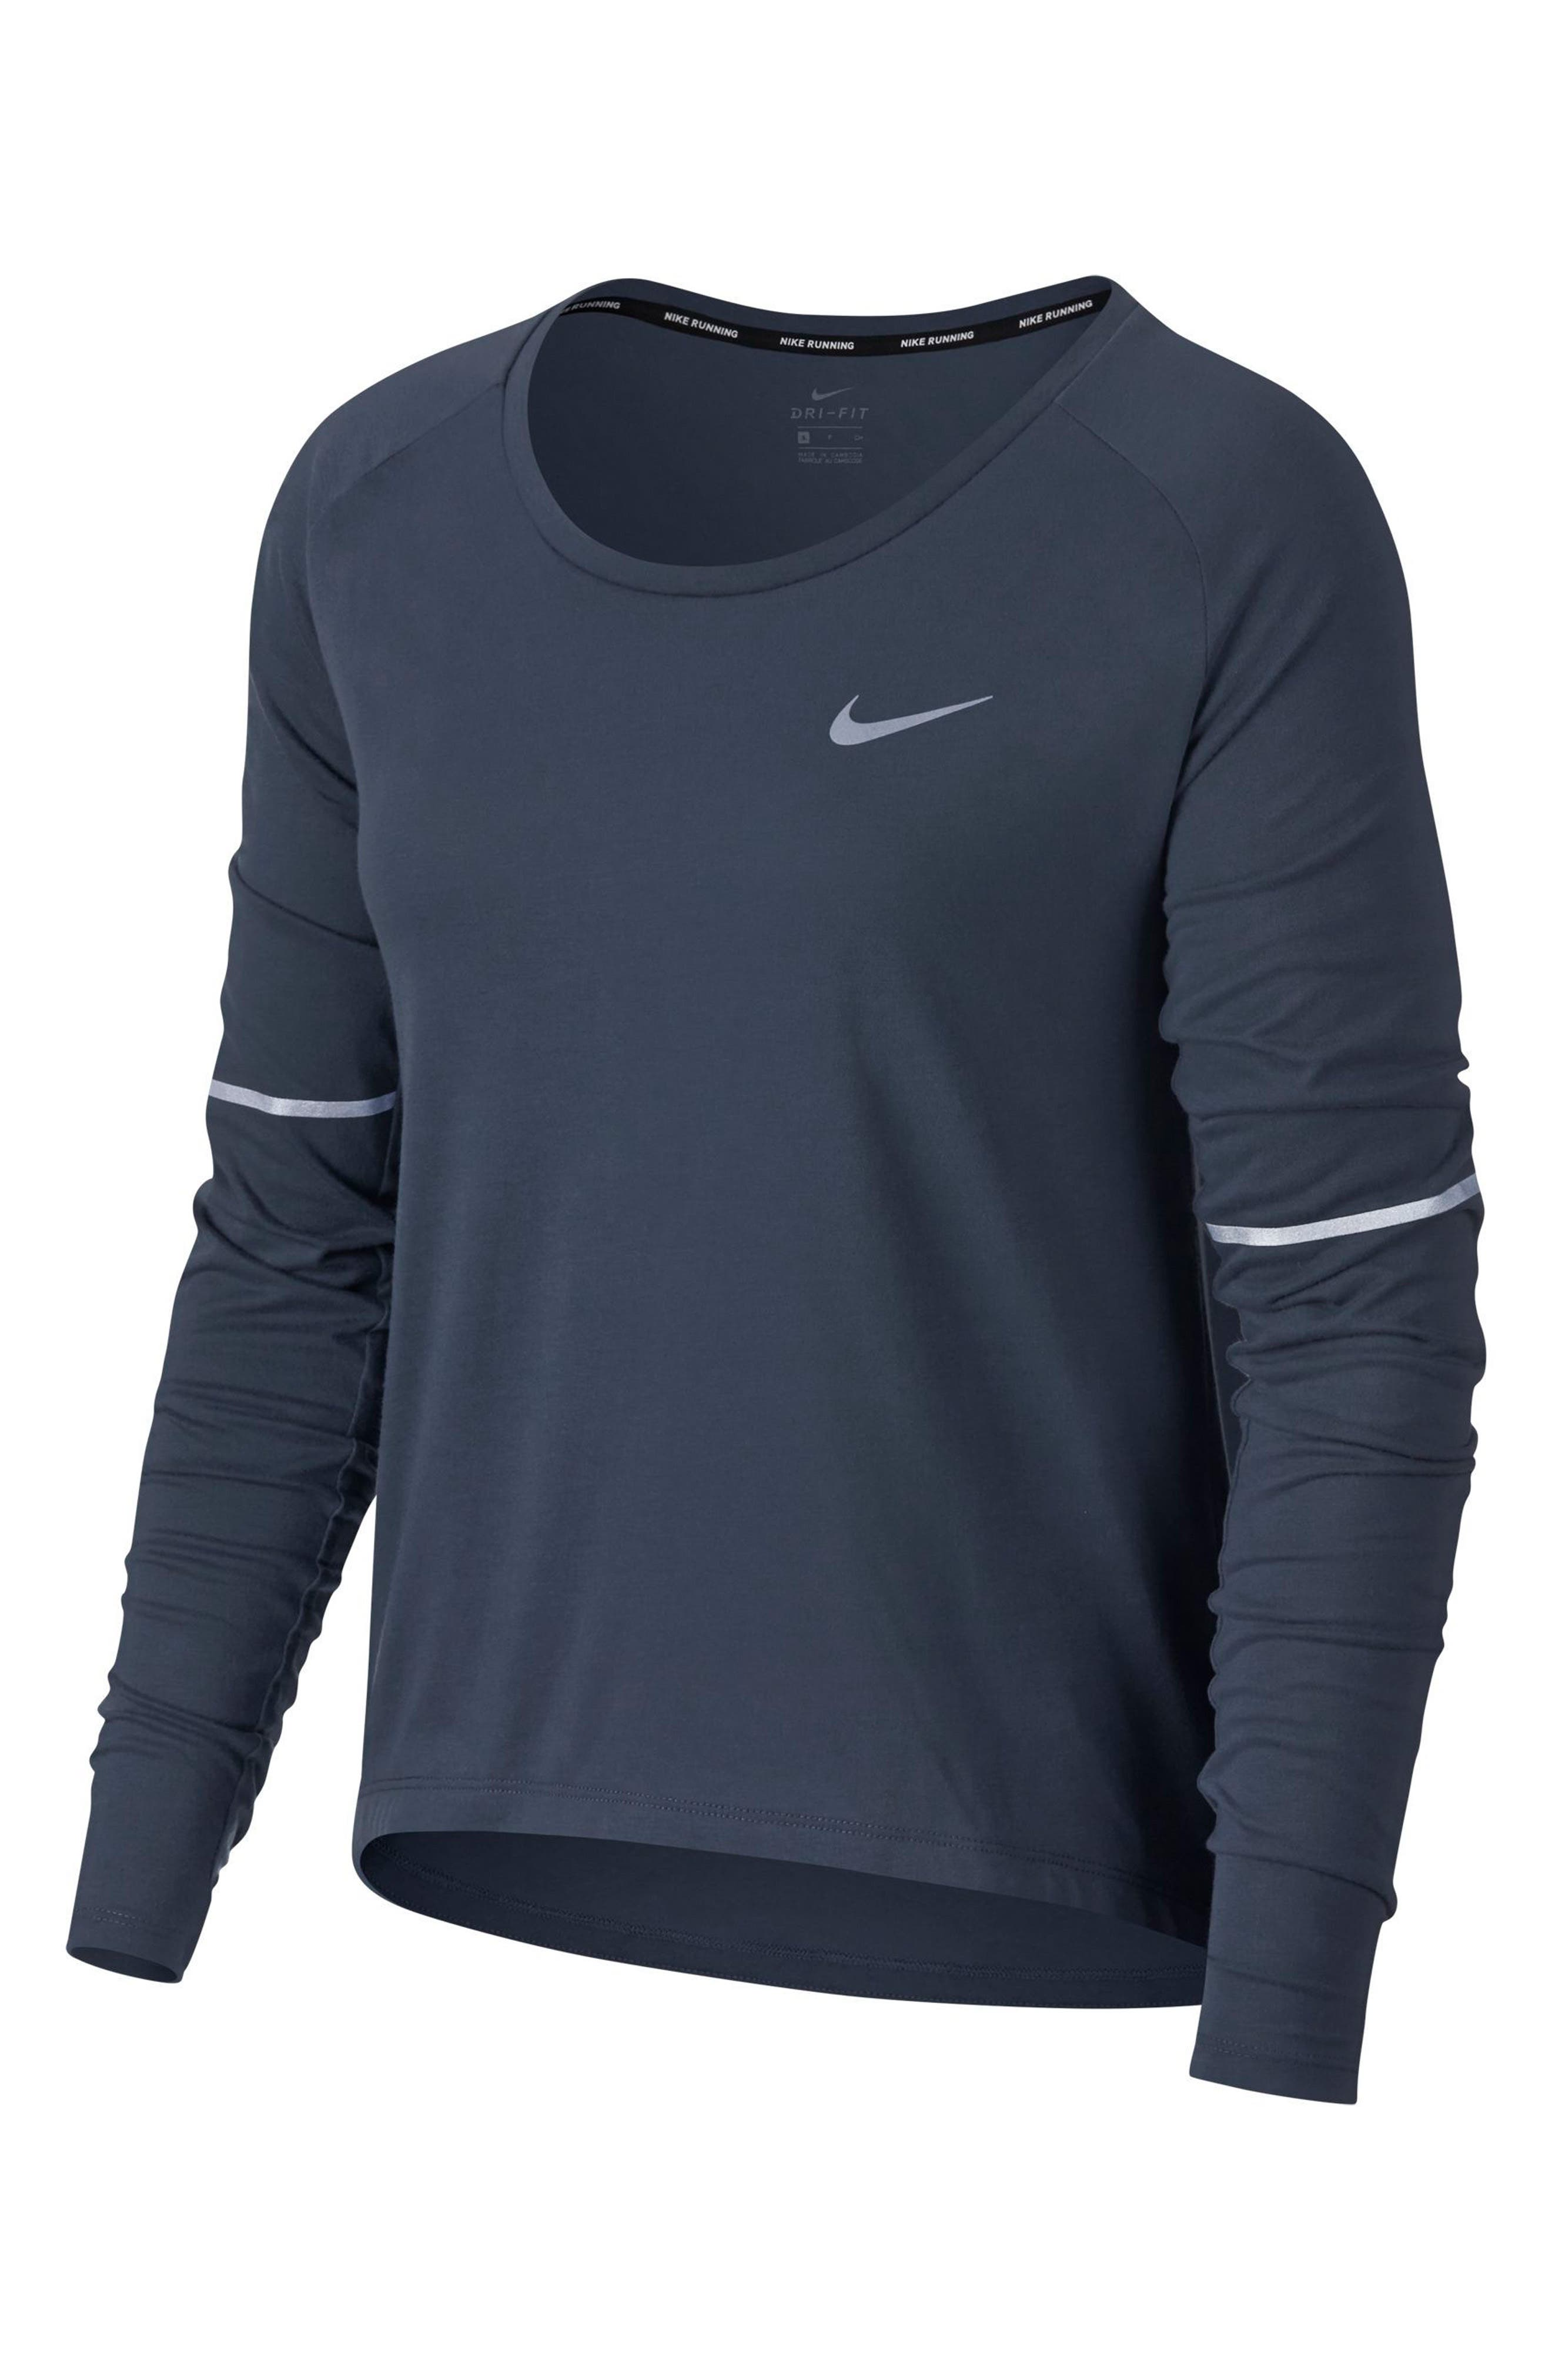 Alternate Image 1 Selected - Nike Breathe Women's Running Top